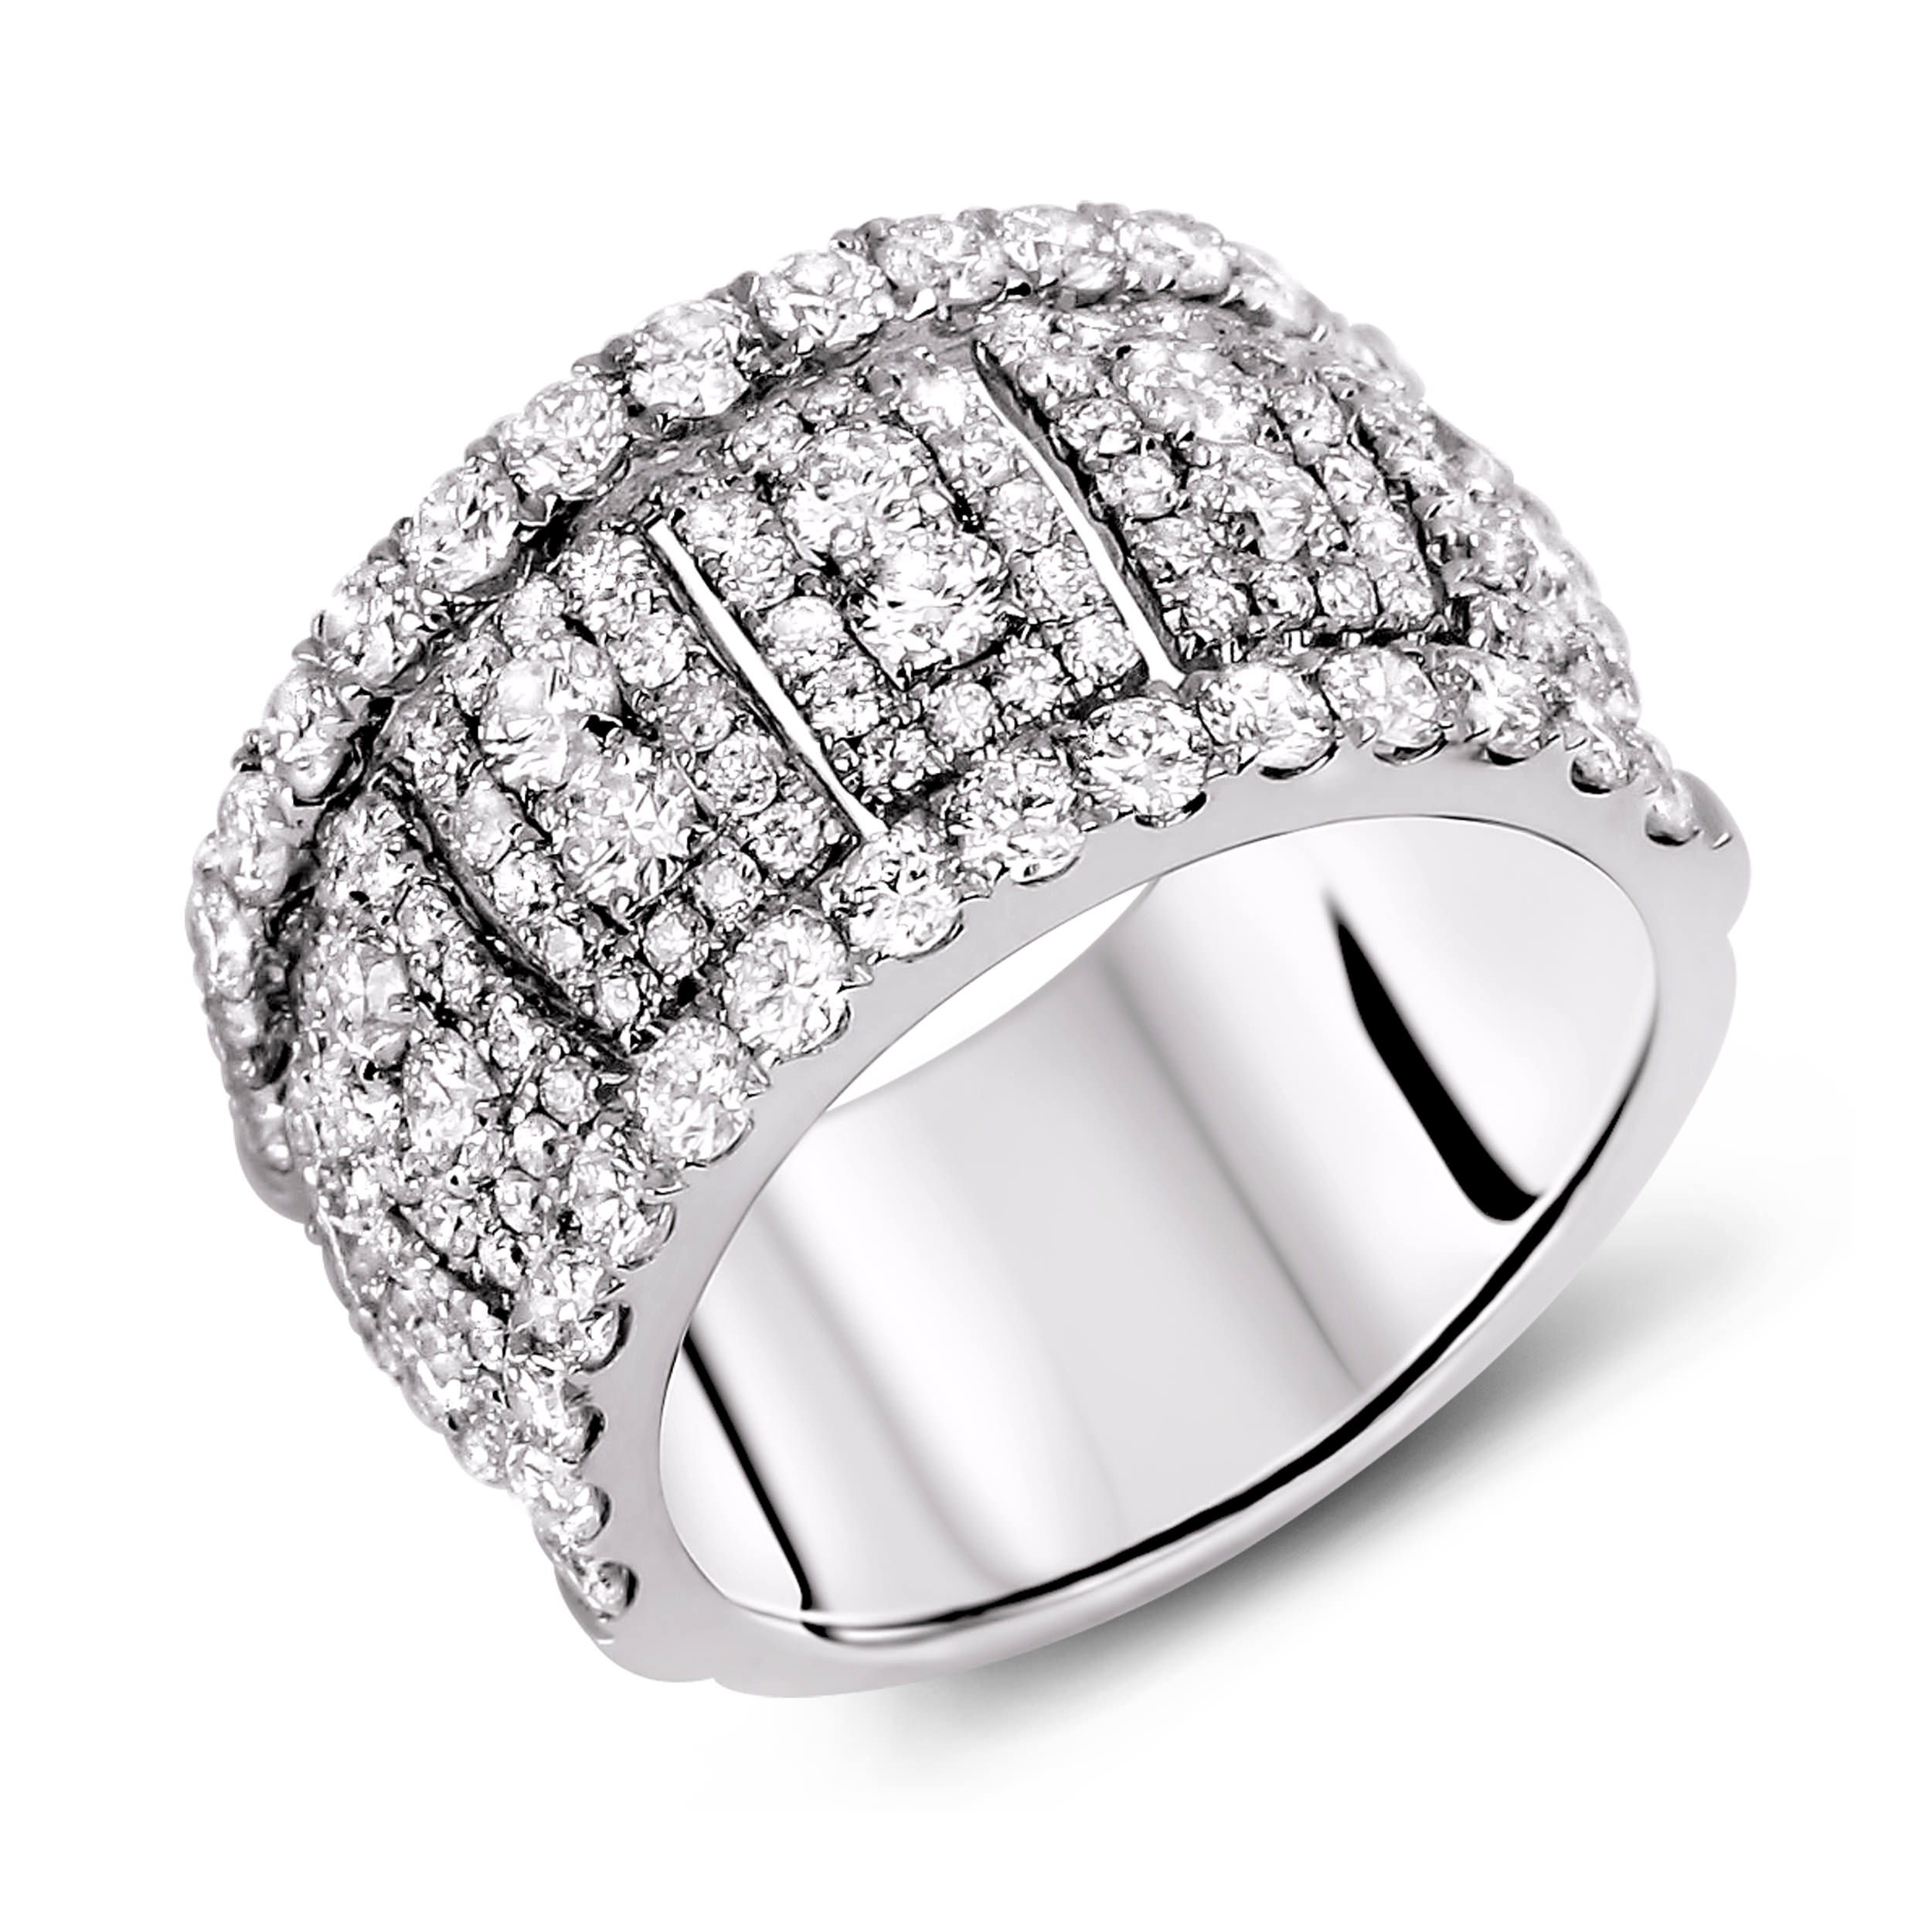 chisholm description dsc jewellery image rings hunter anniversary diamond diamonds from eternity